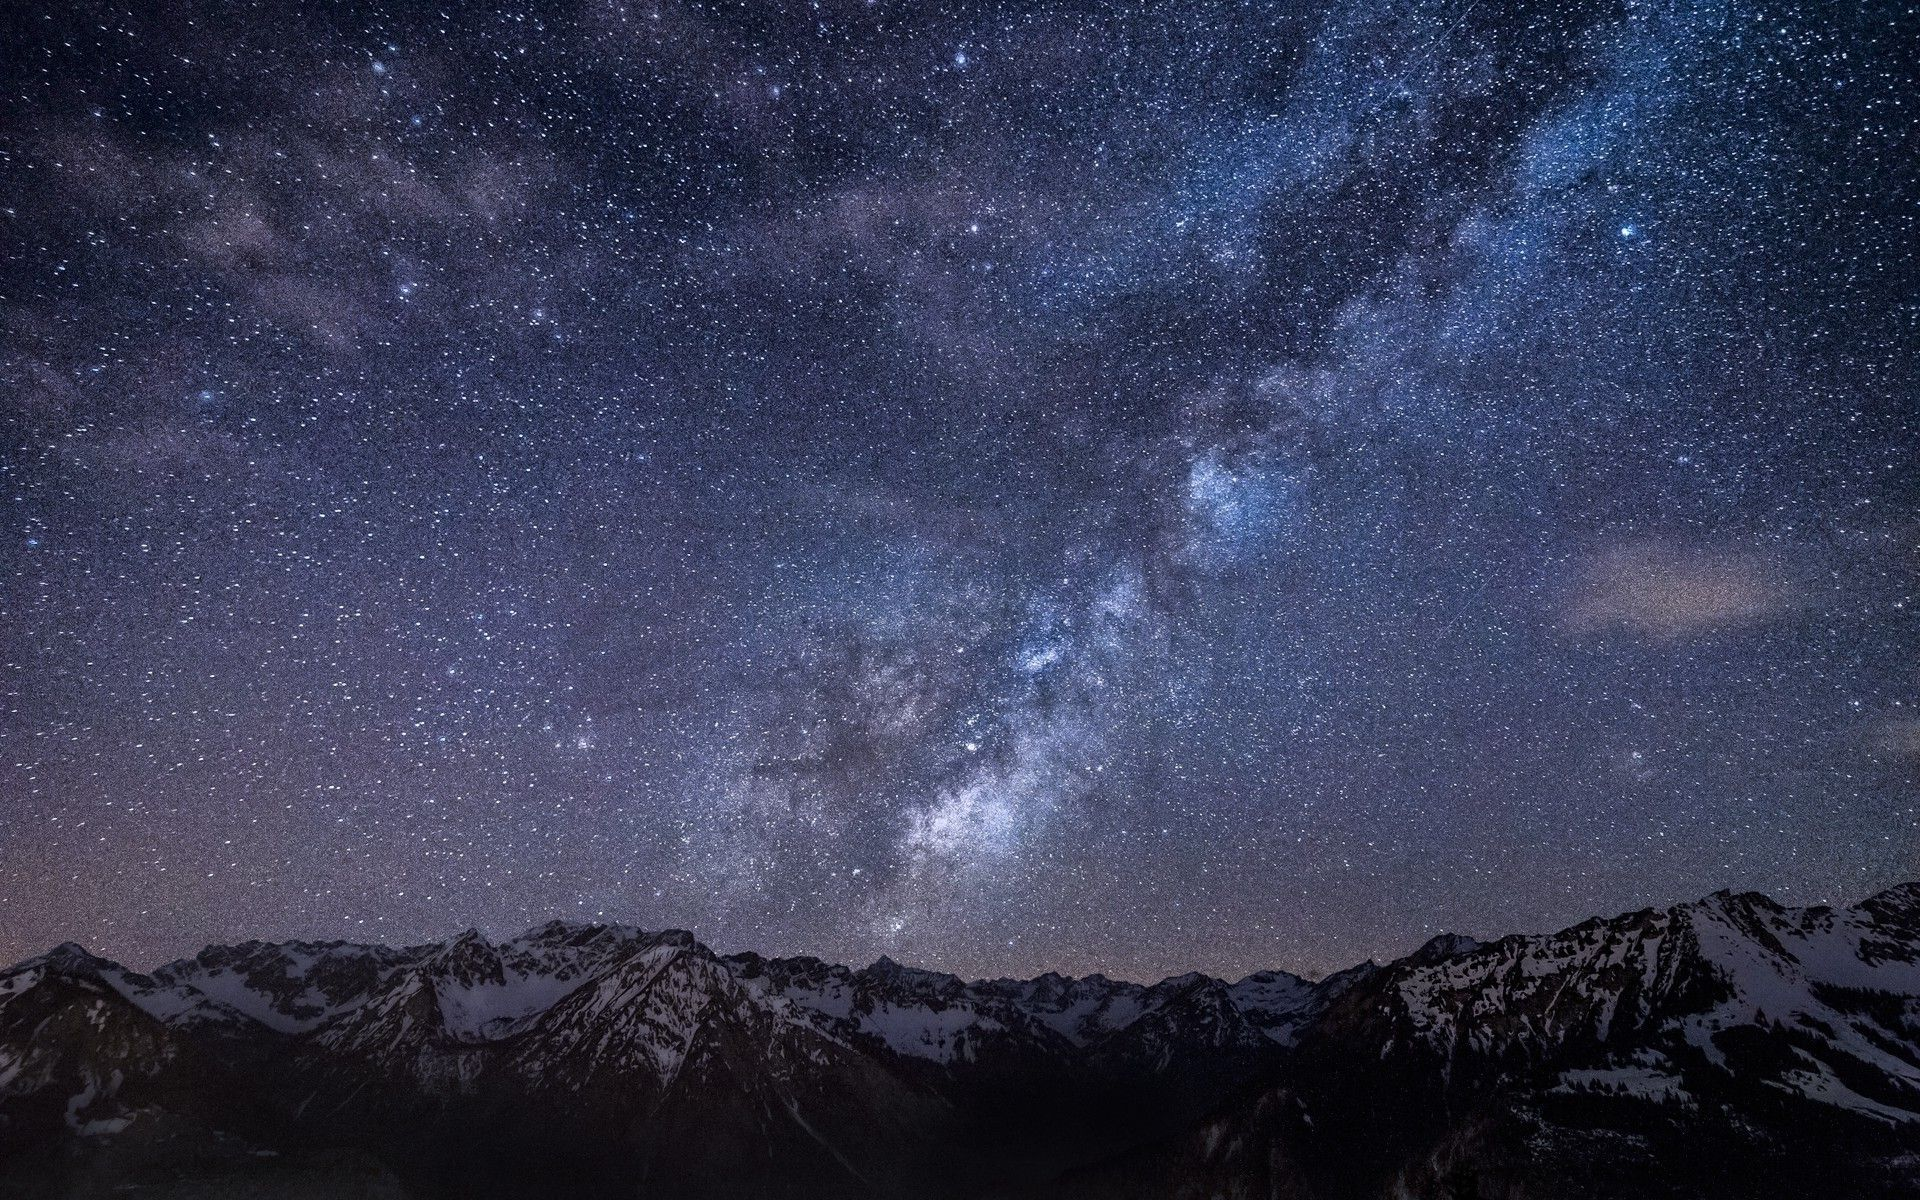 Starry sky above the mountains HD wallpaper download